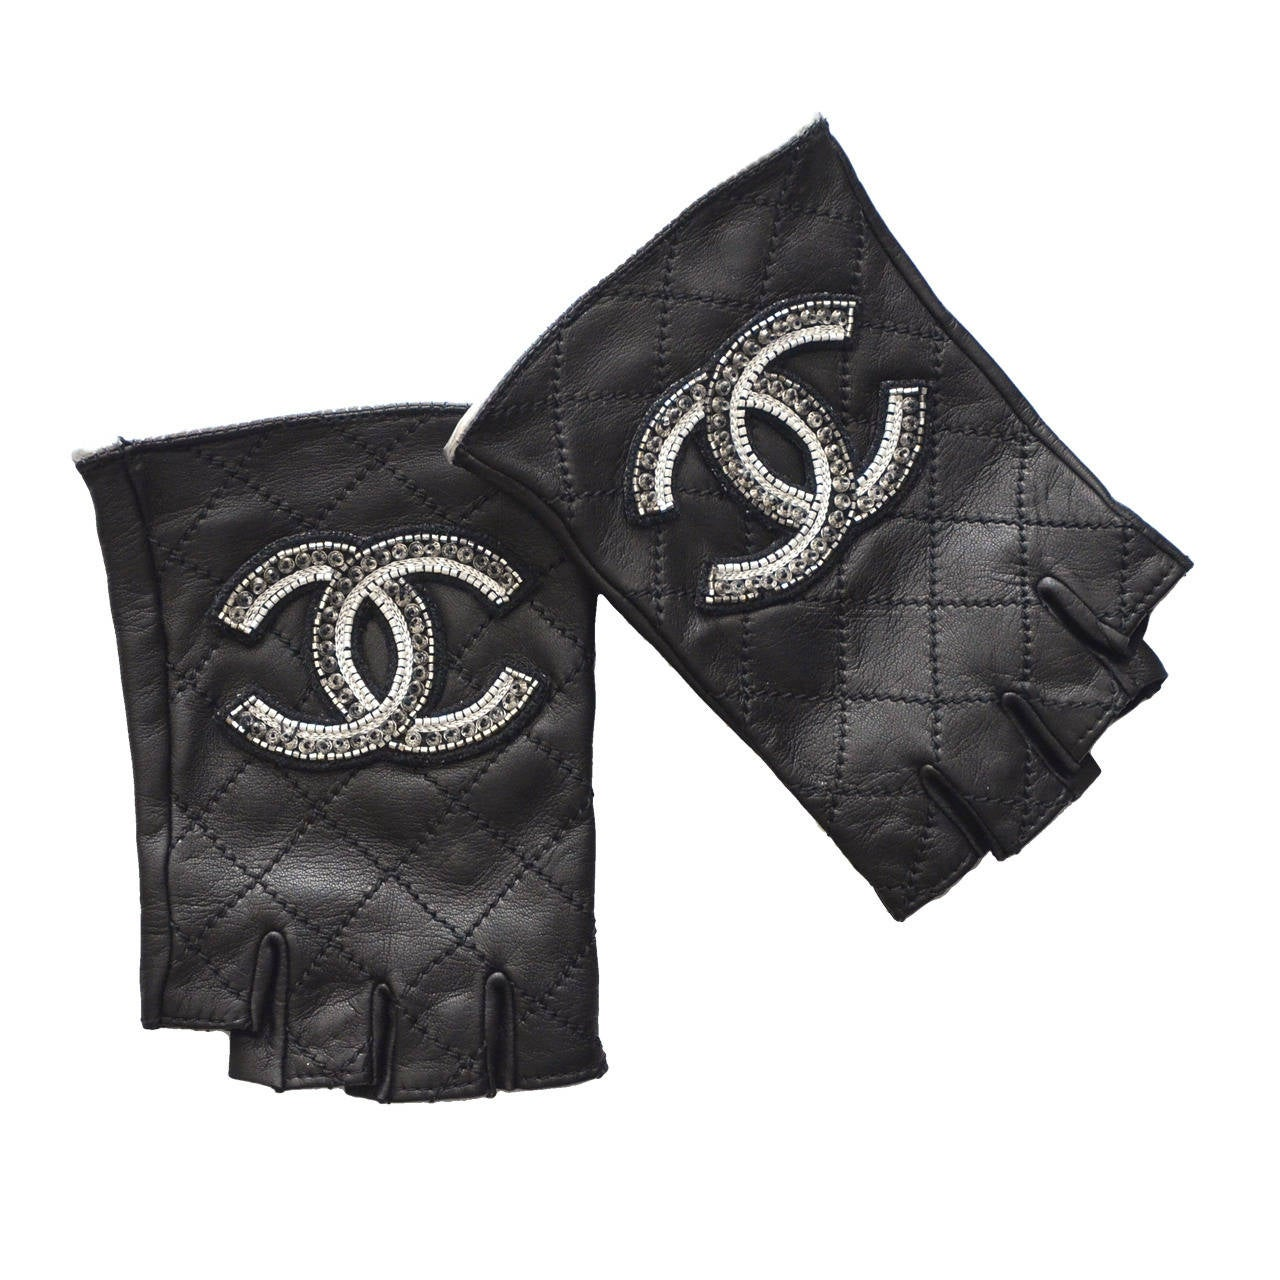 Chanel Embellished Gloves As Seen On Madonna, Fergie And Paris Mint 1